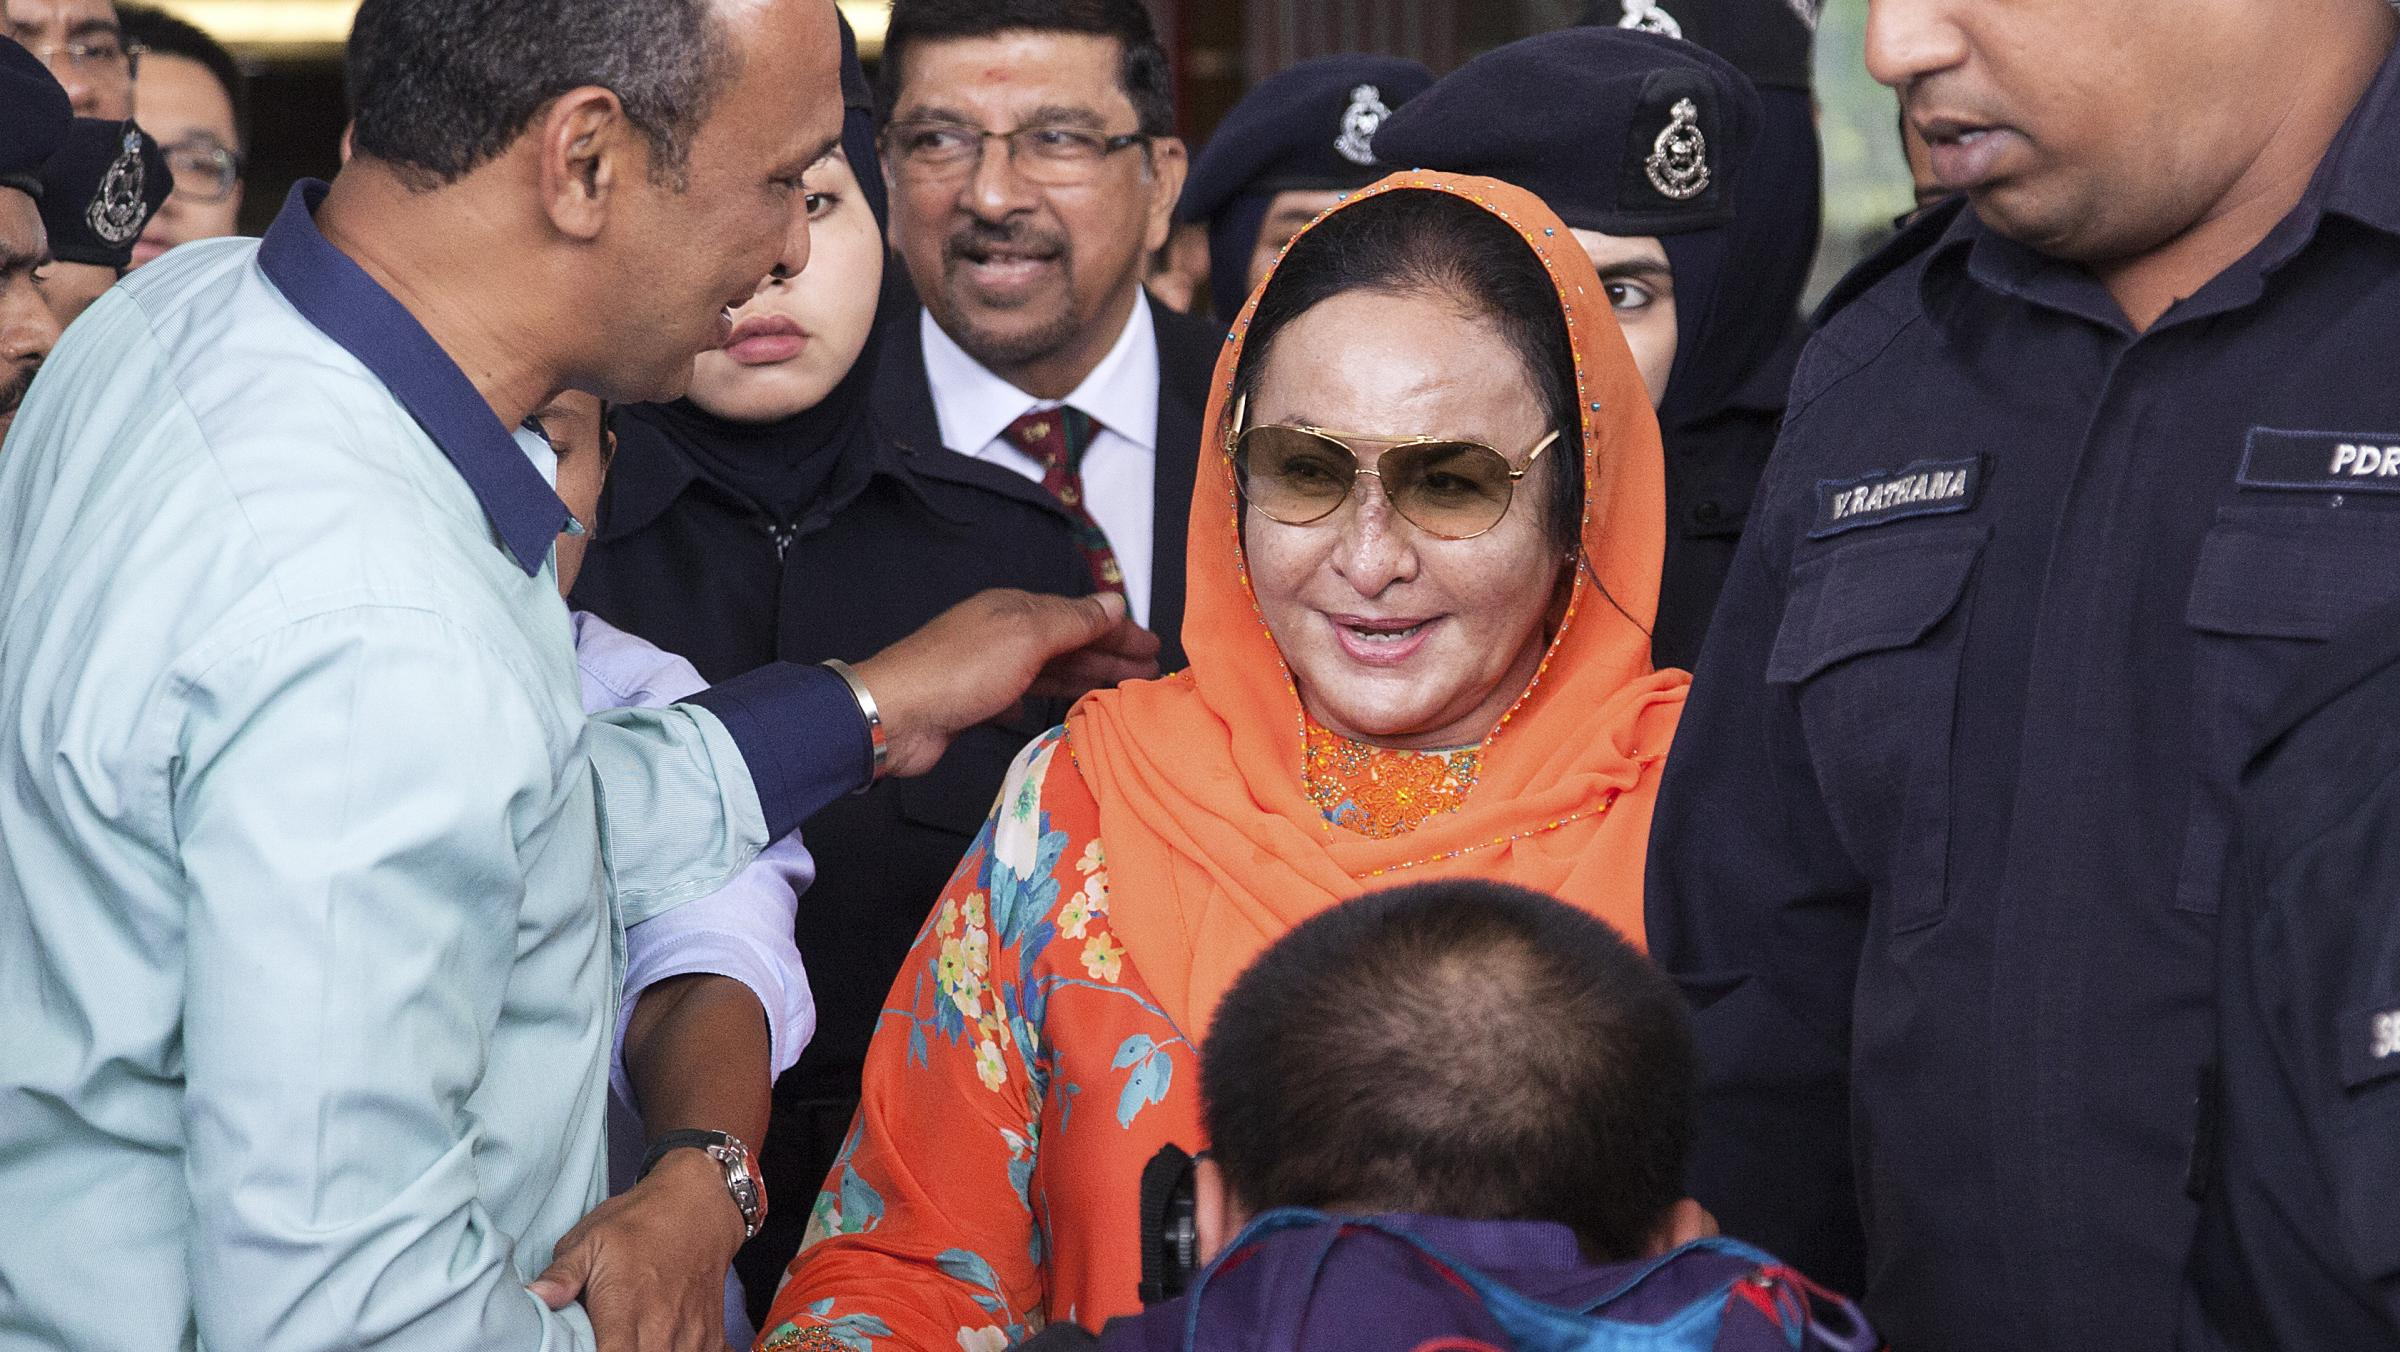 Rosmah Mansor pleaded not guilty to 12 counts of money laundering